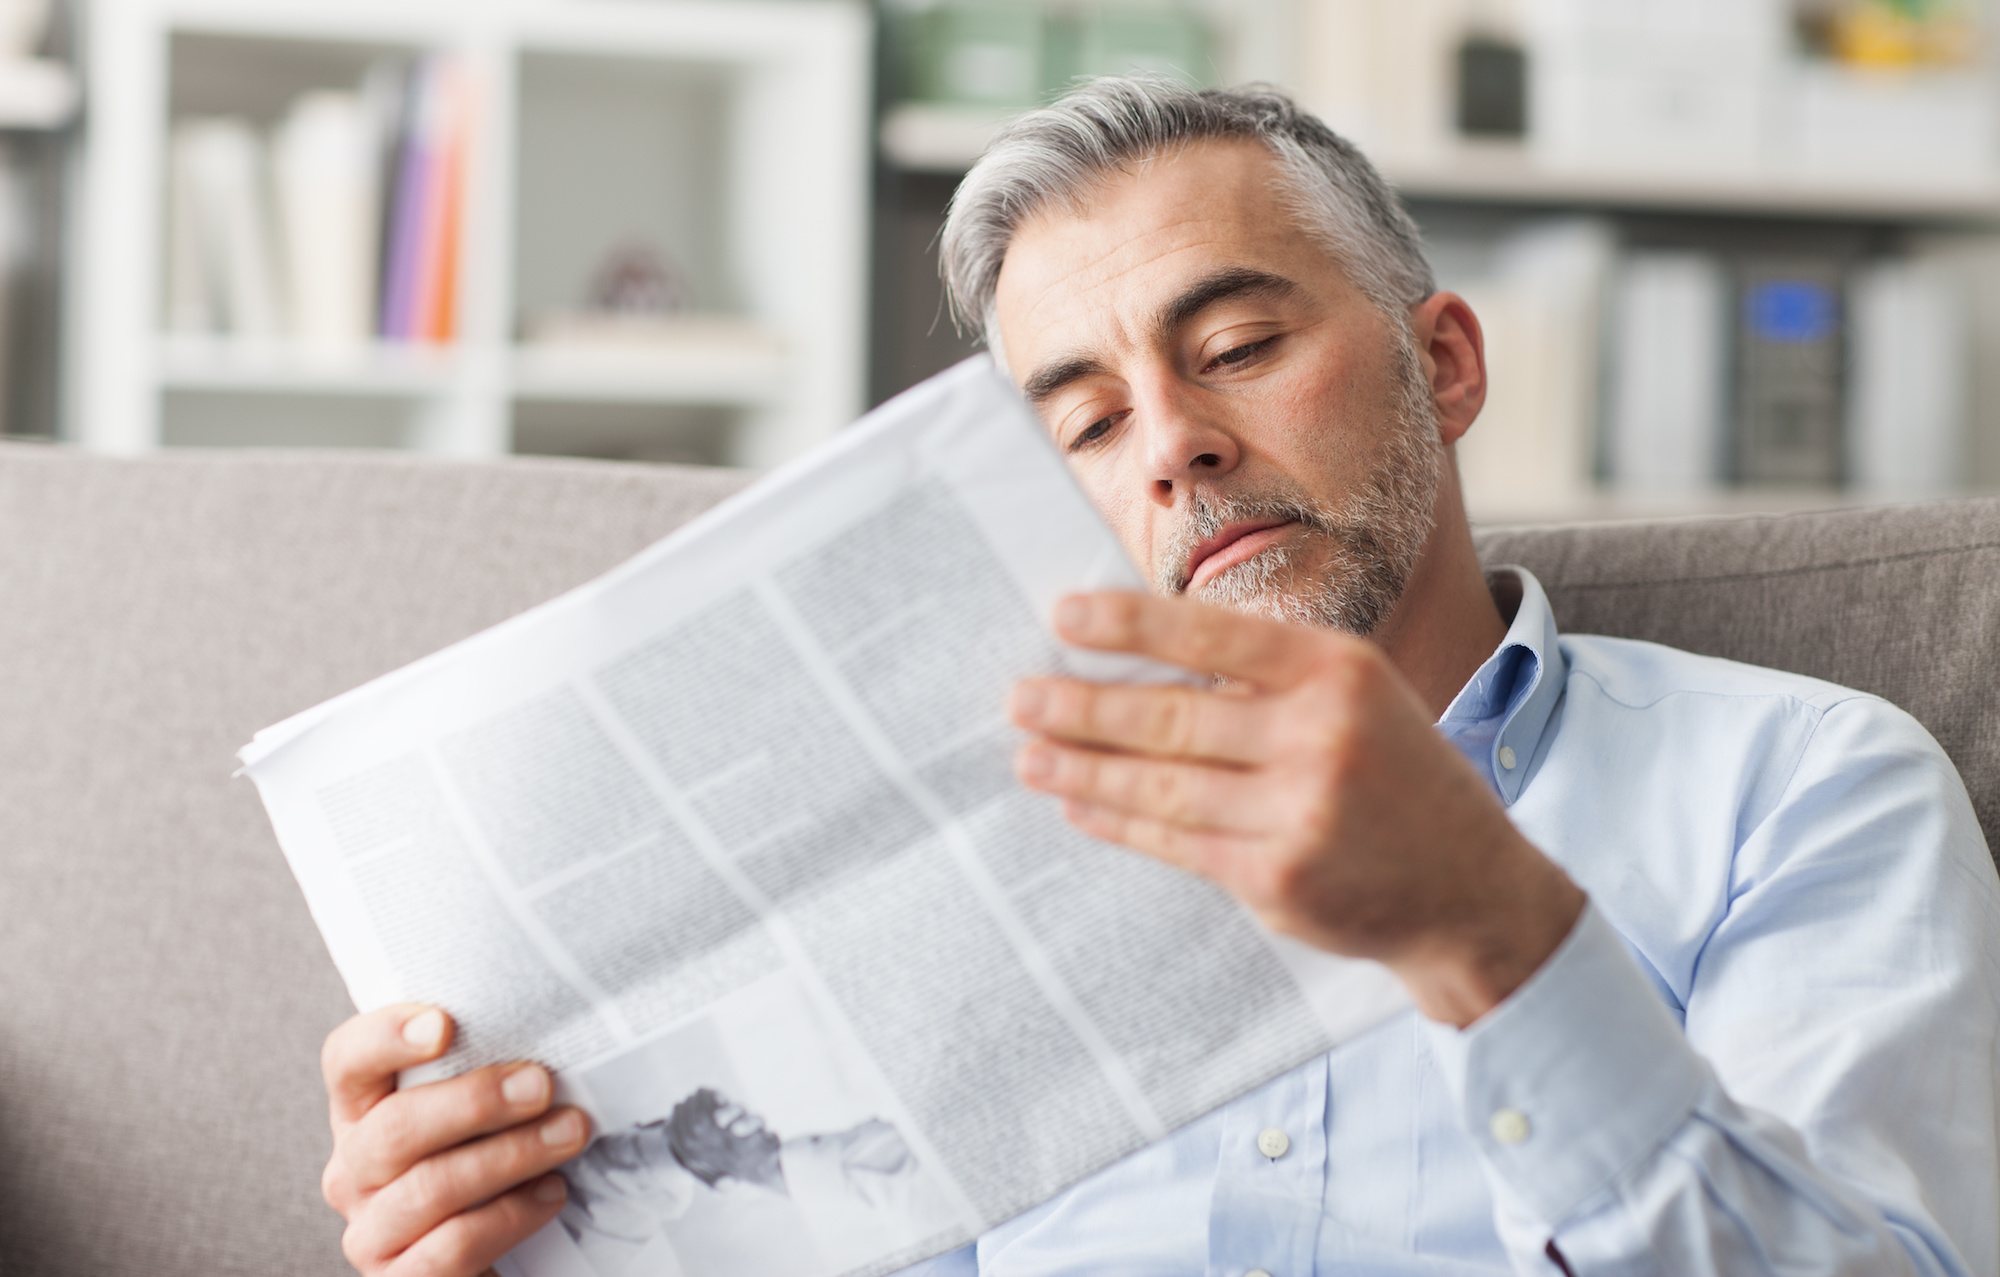 create a newspaper party invitation for a retirement newspaper - Happiedays